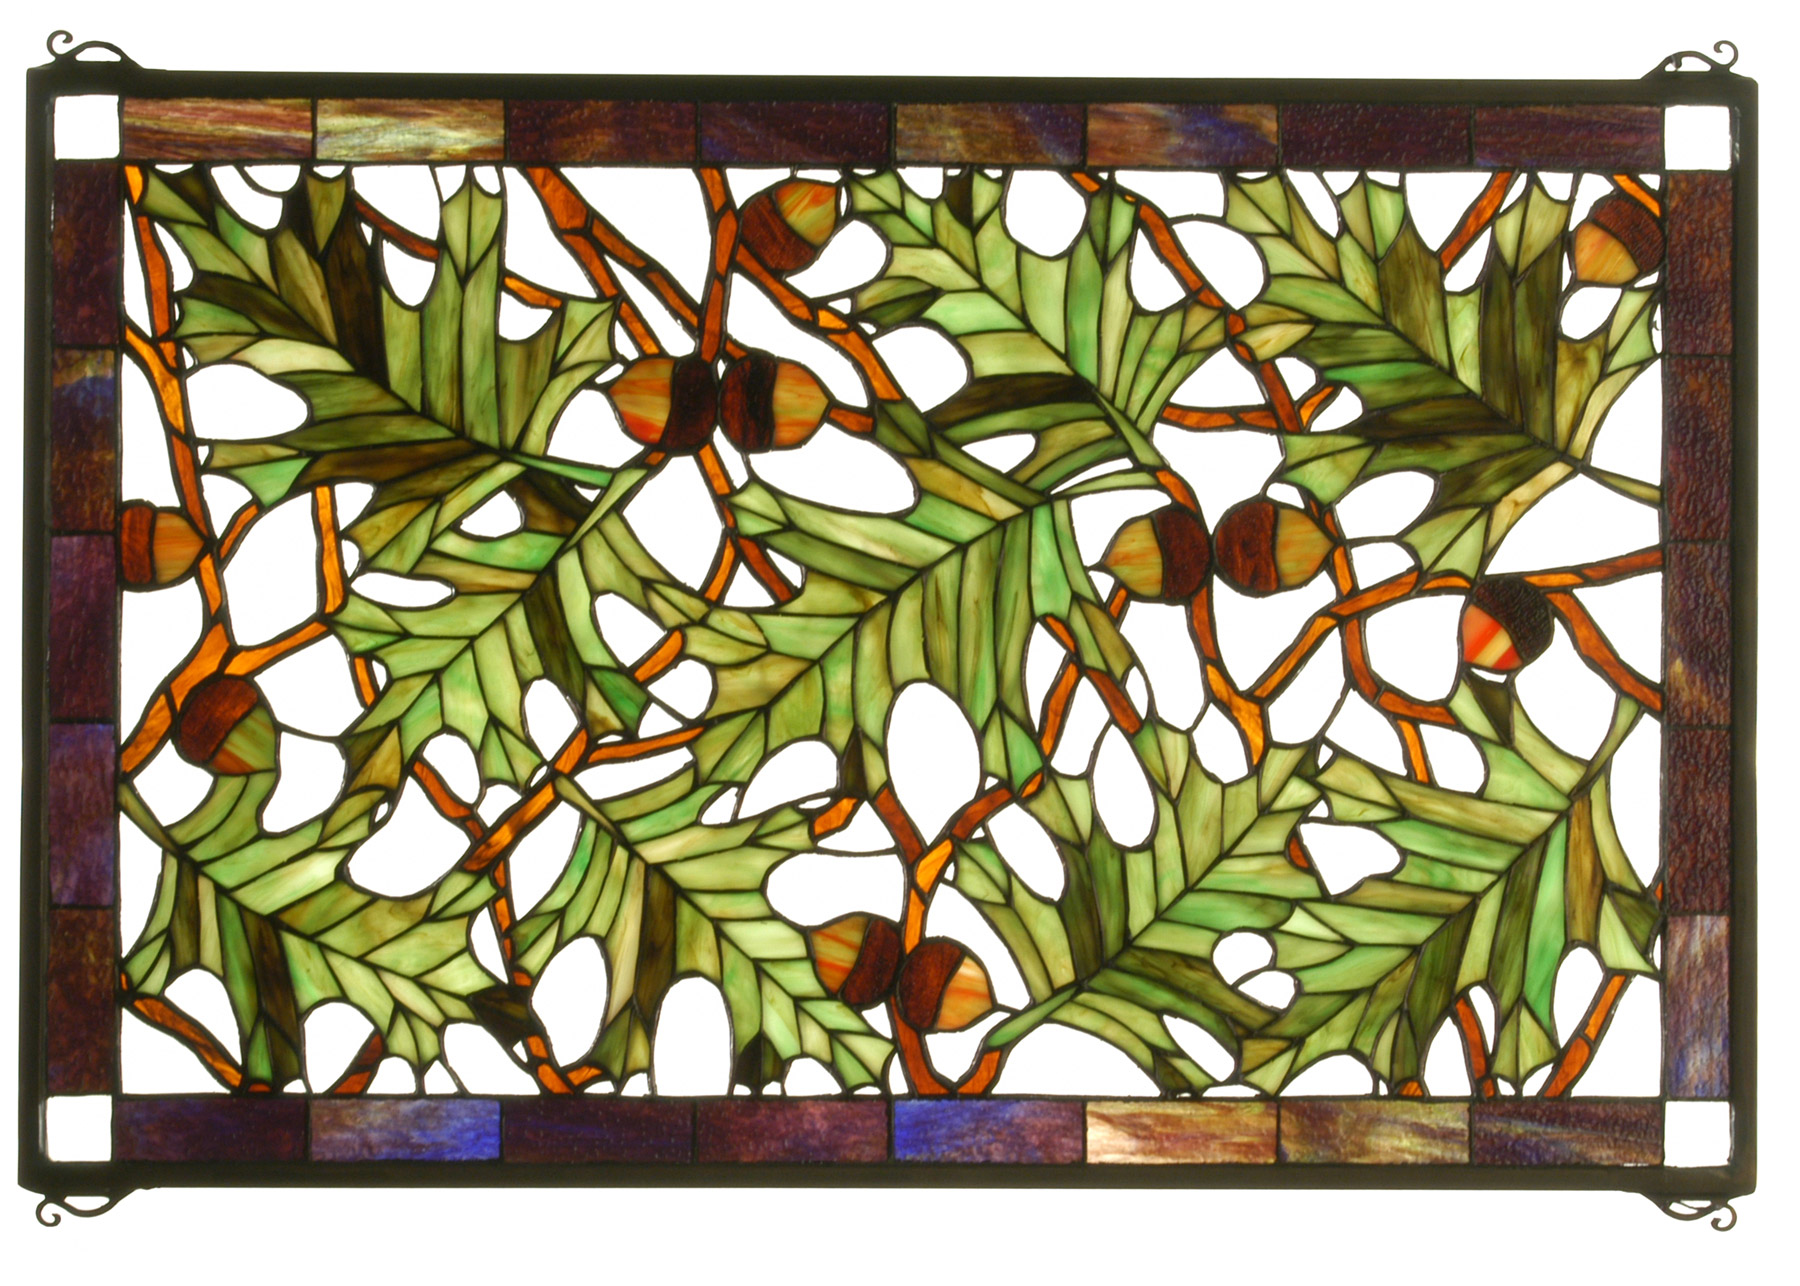 Meyda 66276 Acorn Oak Leaf Stained Glass Window